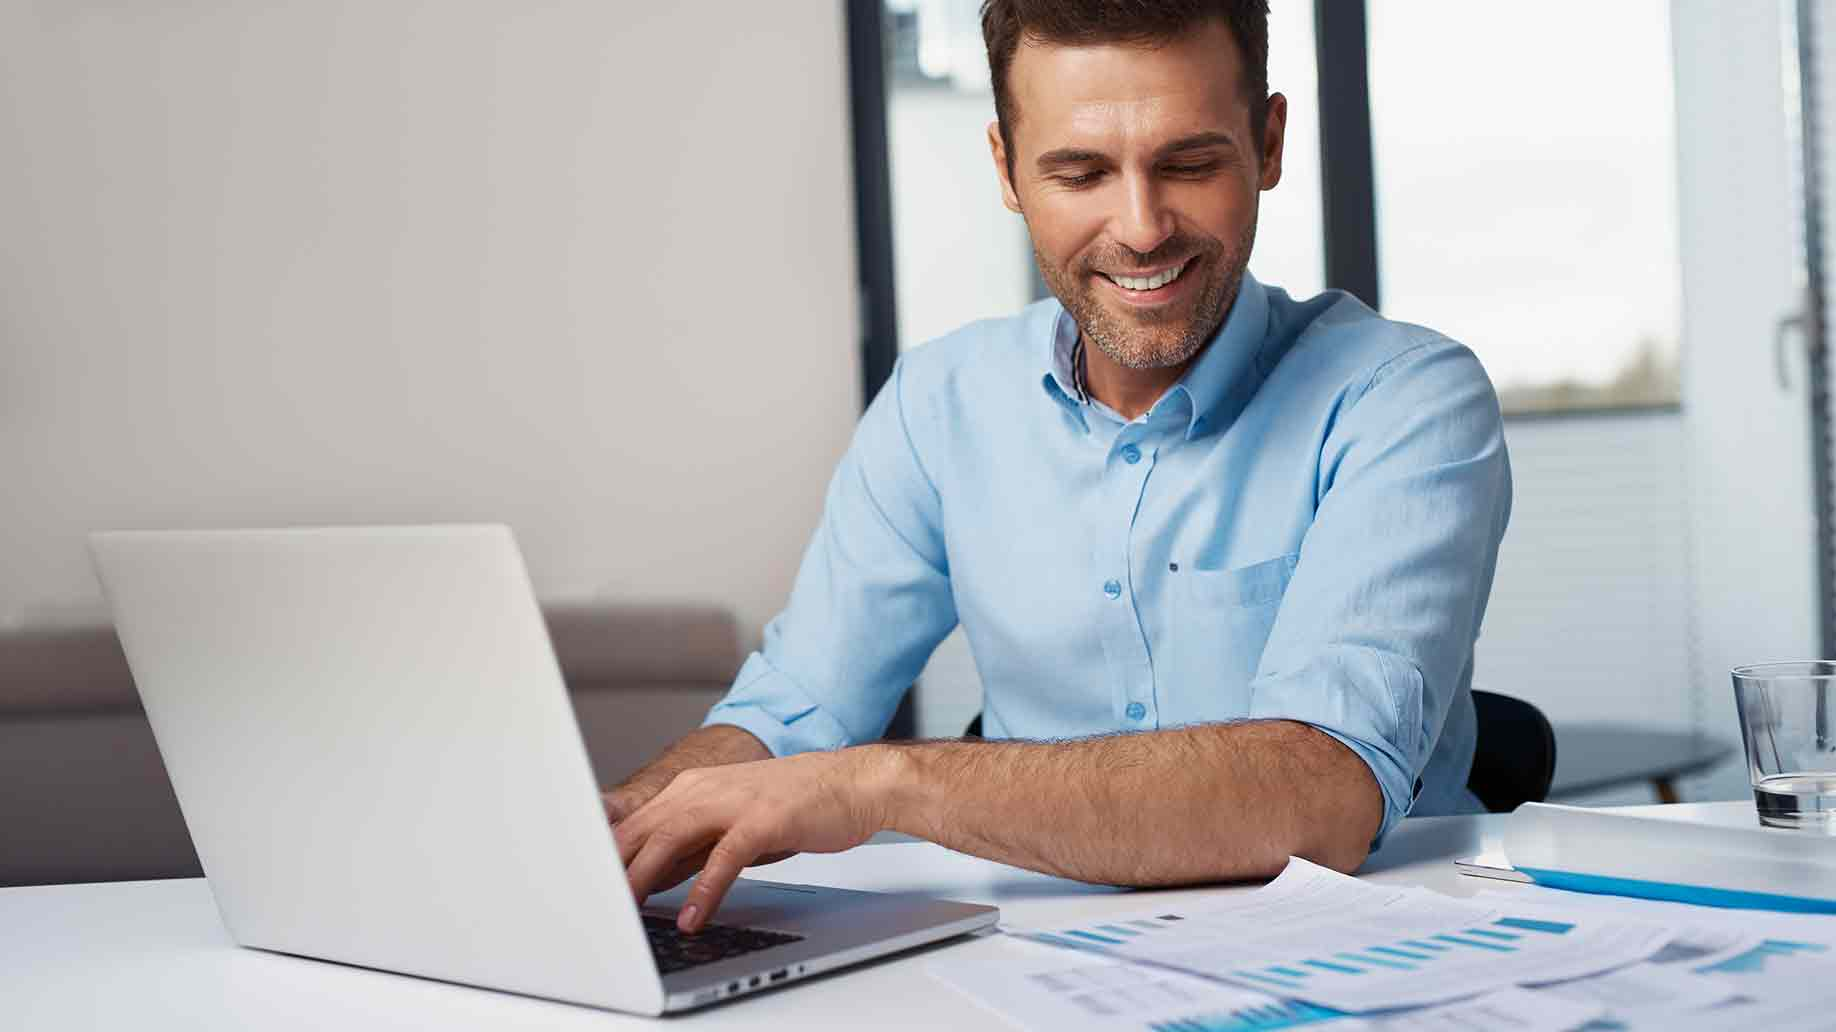 smiling man entering data to laptop at home